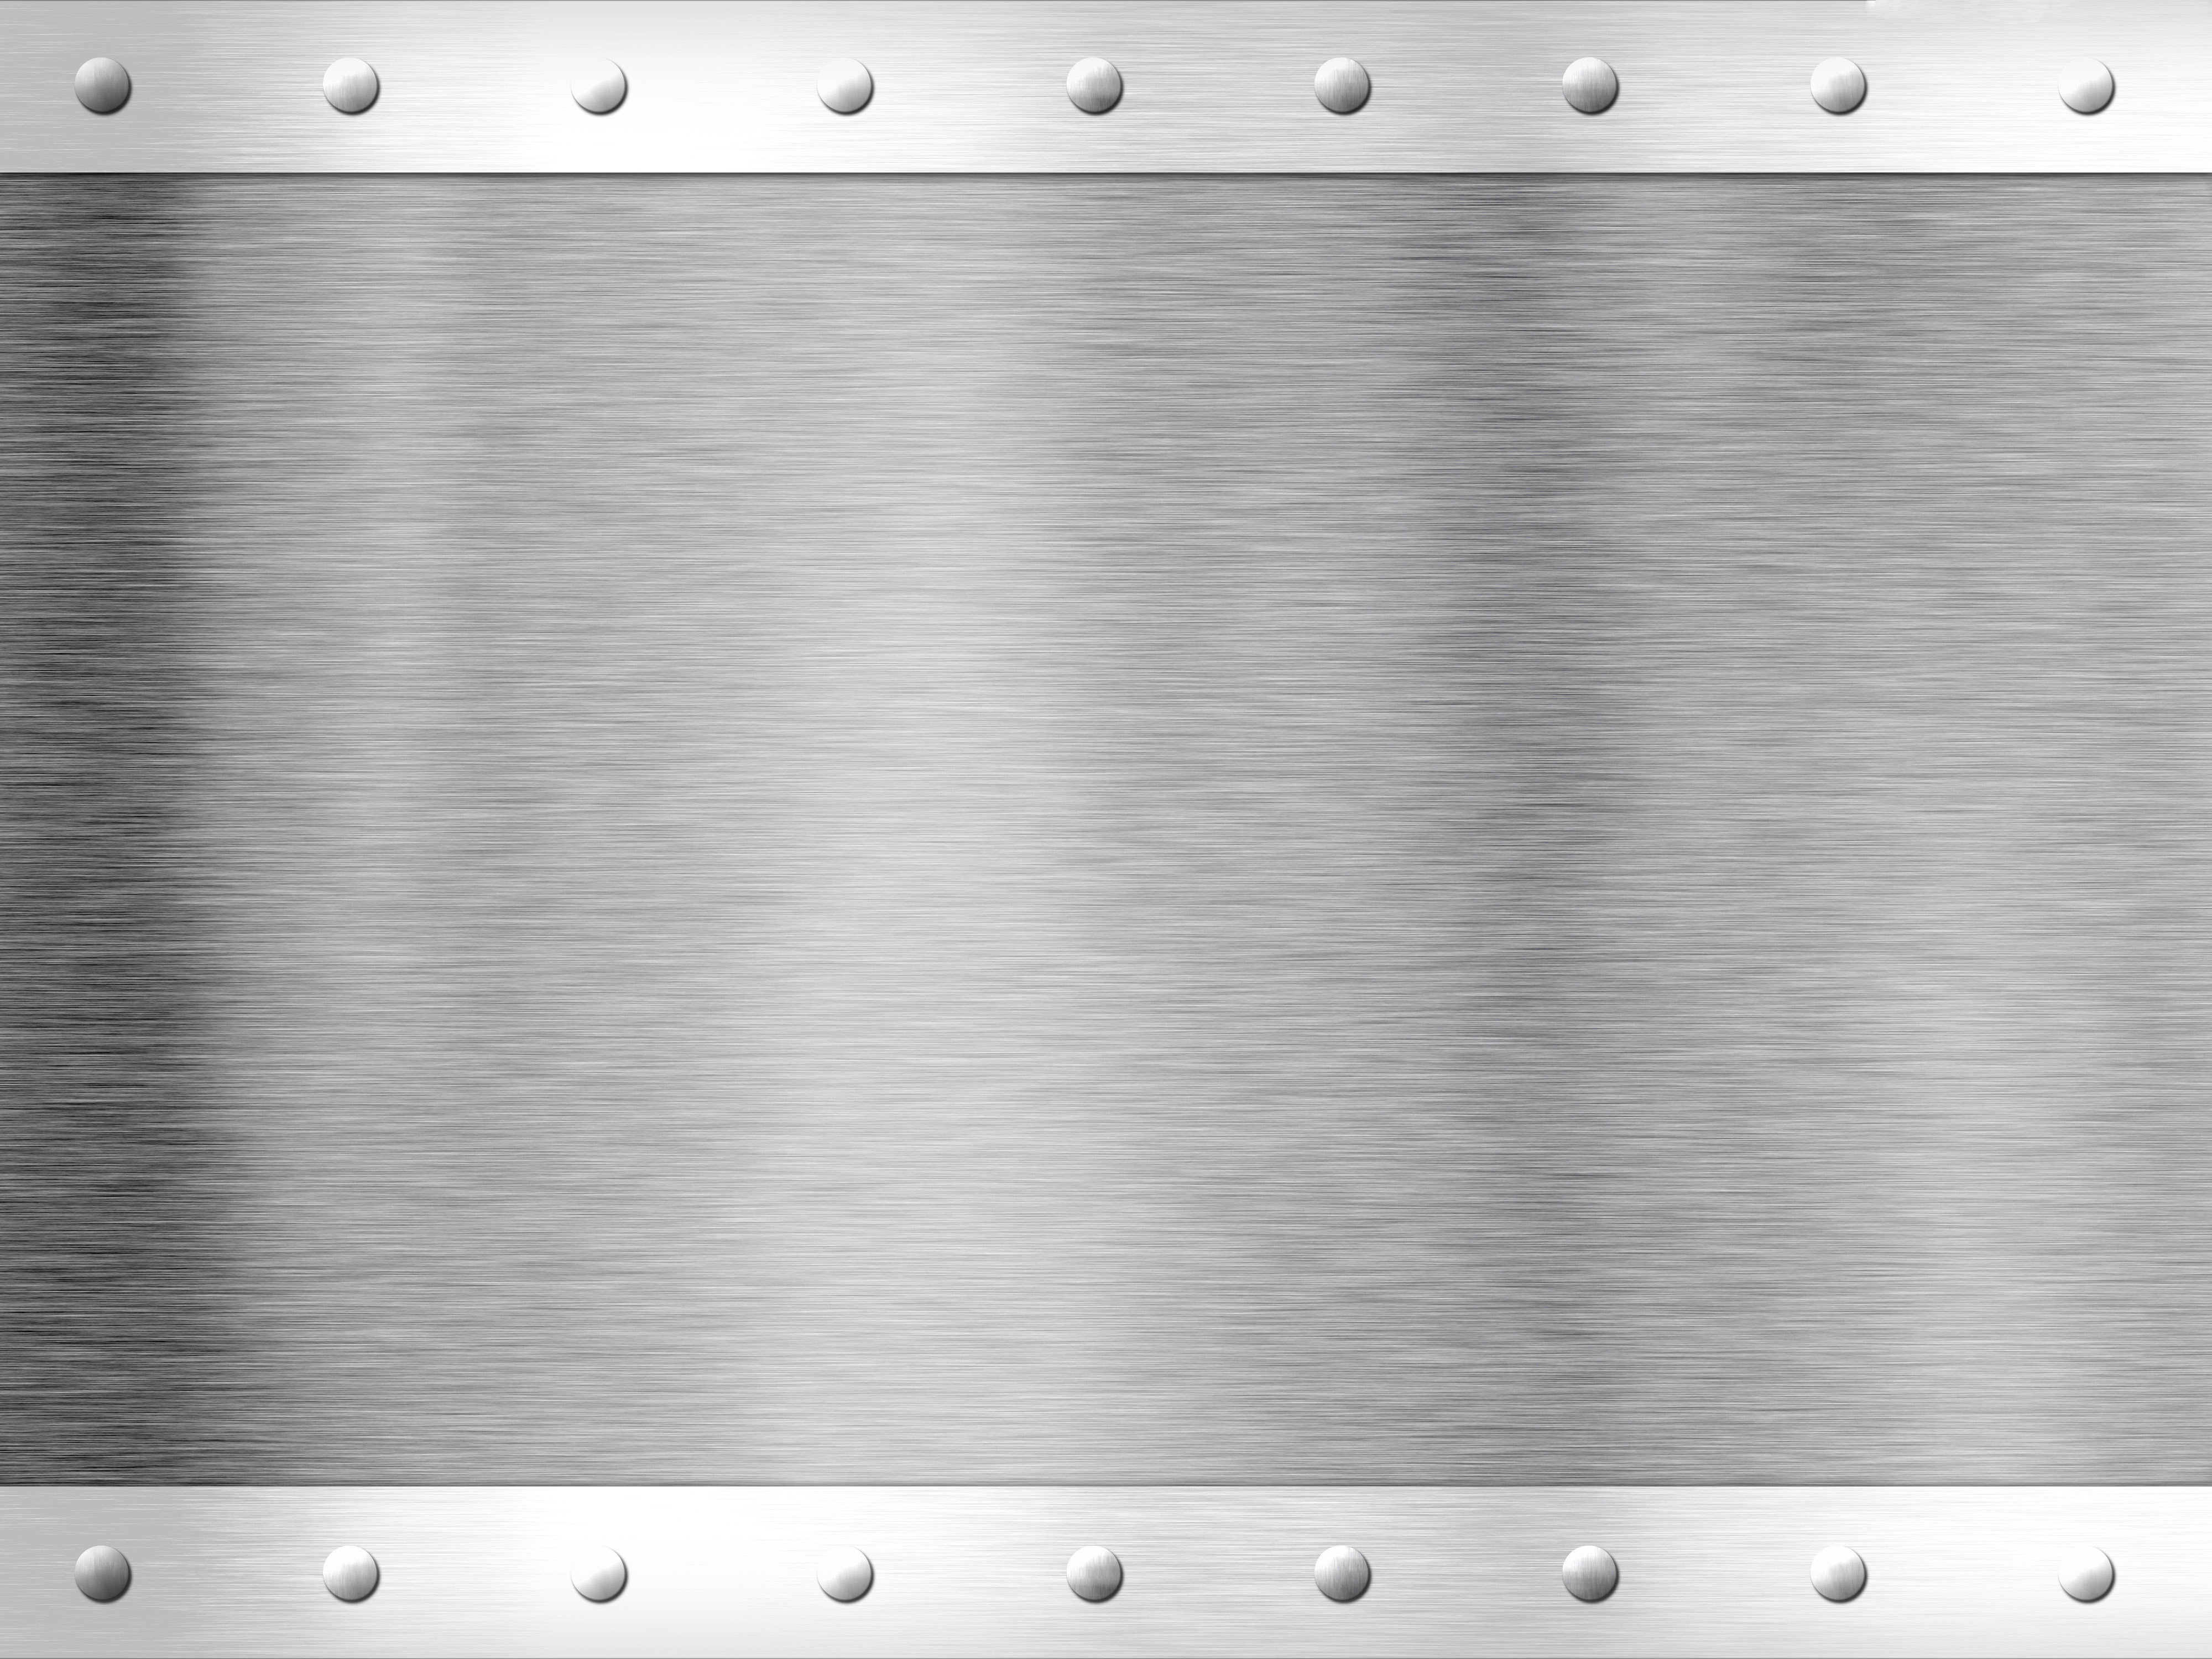 aluminum, riveting, texture, background, download, aluminum texture background, wallpapers for table